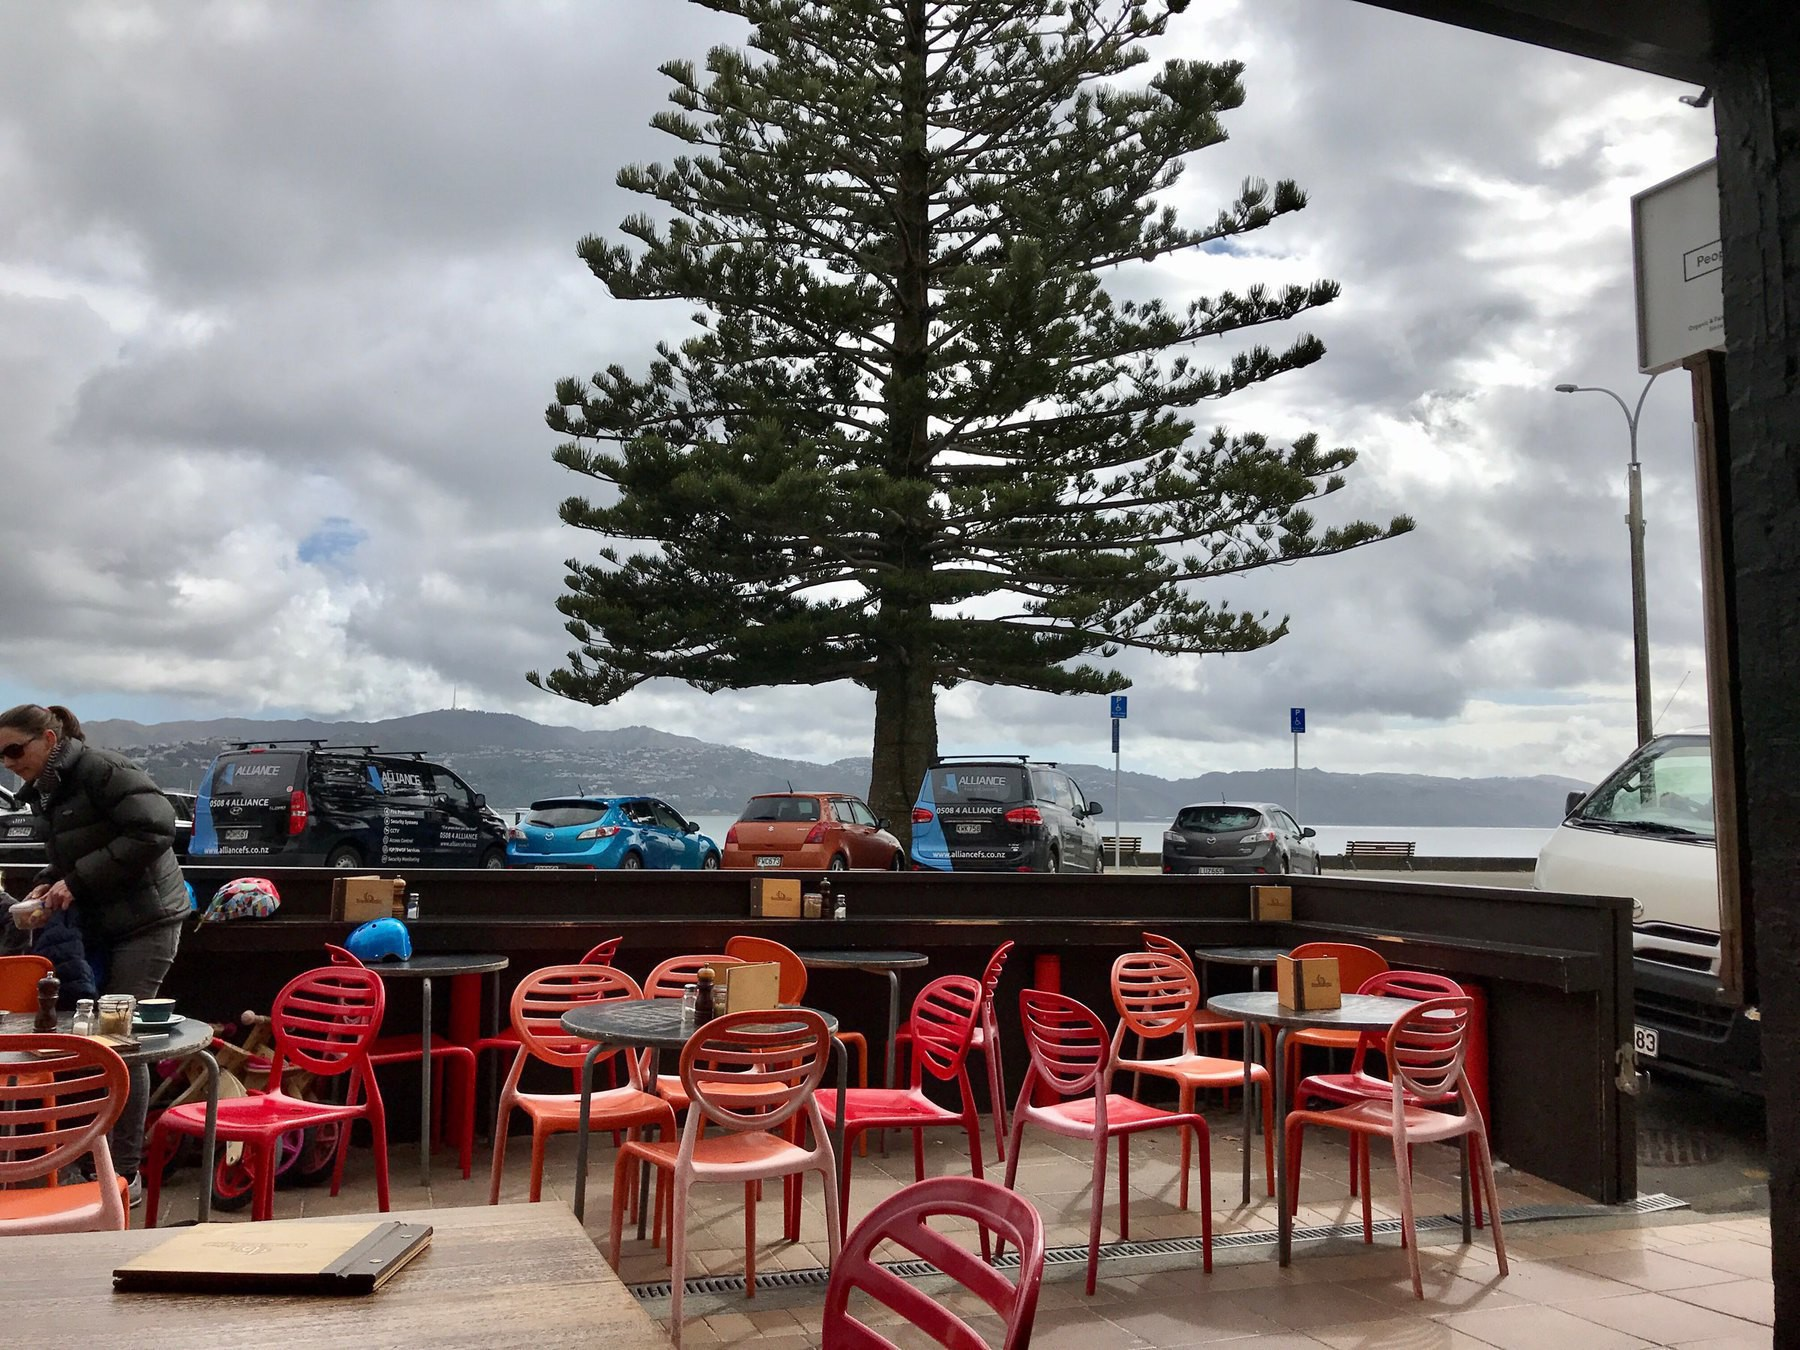 View across cafe tables and chairs to parked cars, with the harbour beyond.